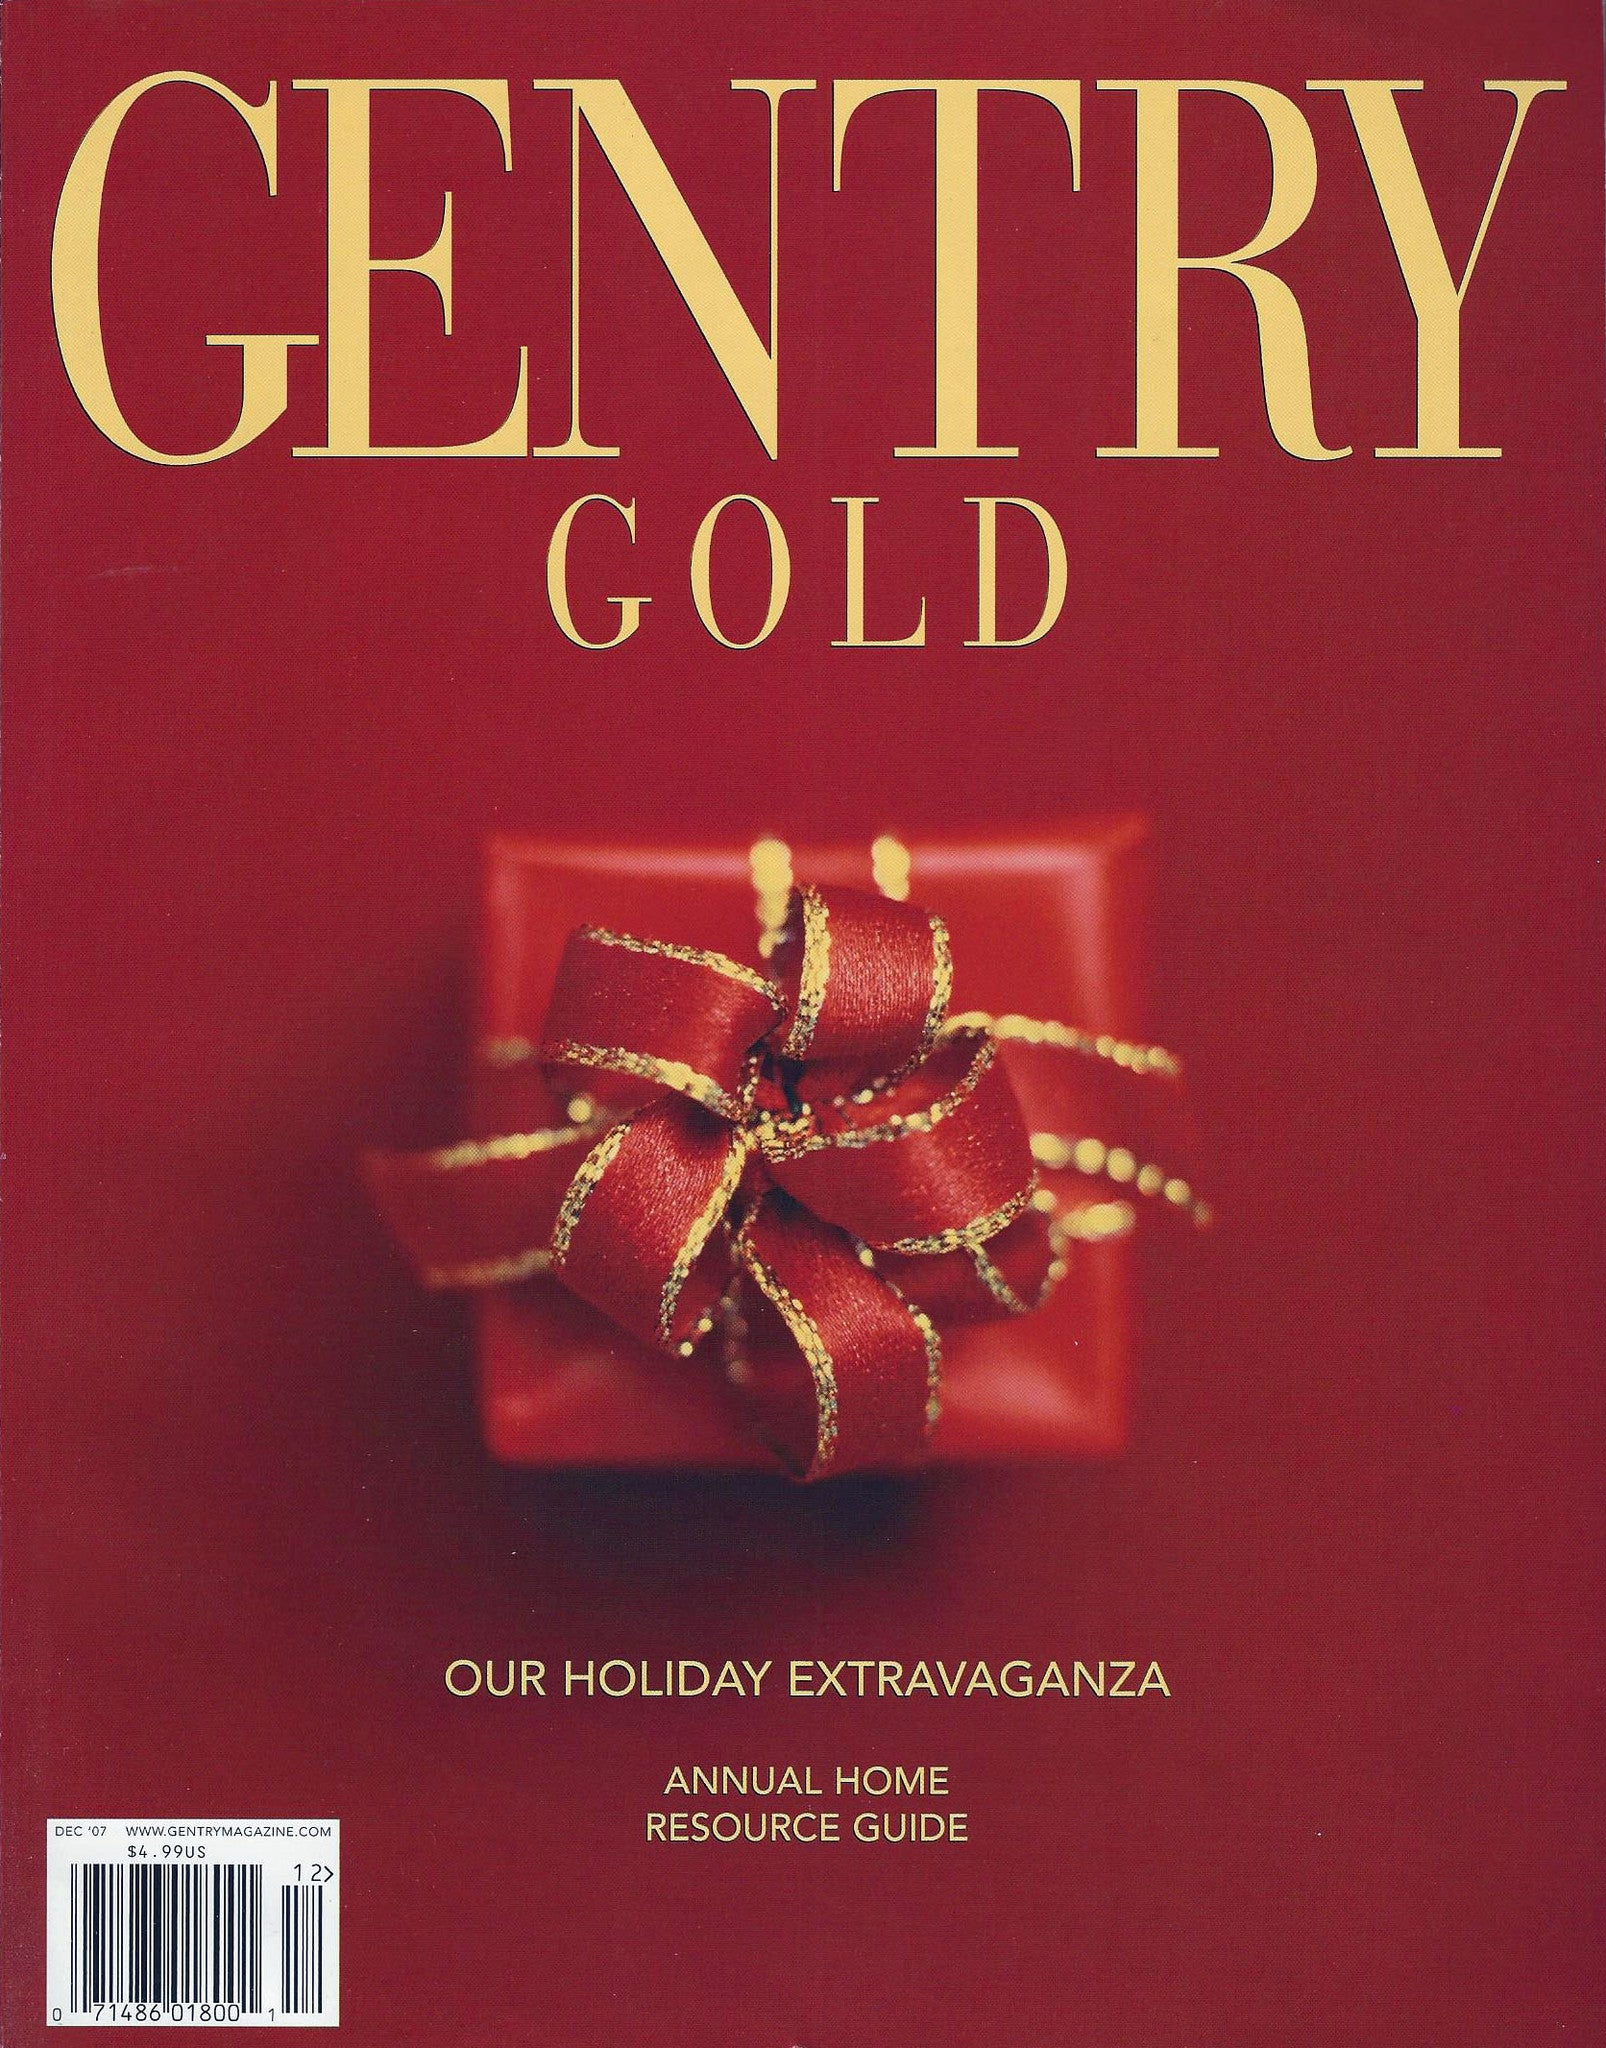 Gentry Magazine - Features 18K Faceted Amethyst Earrings by John S Brana